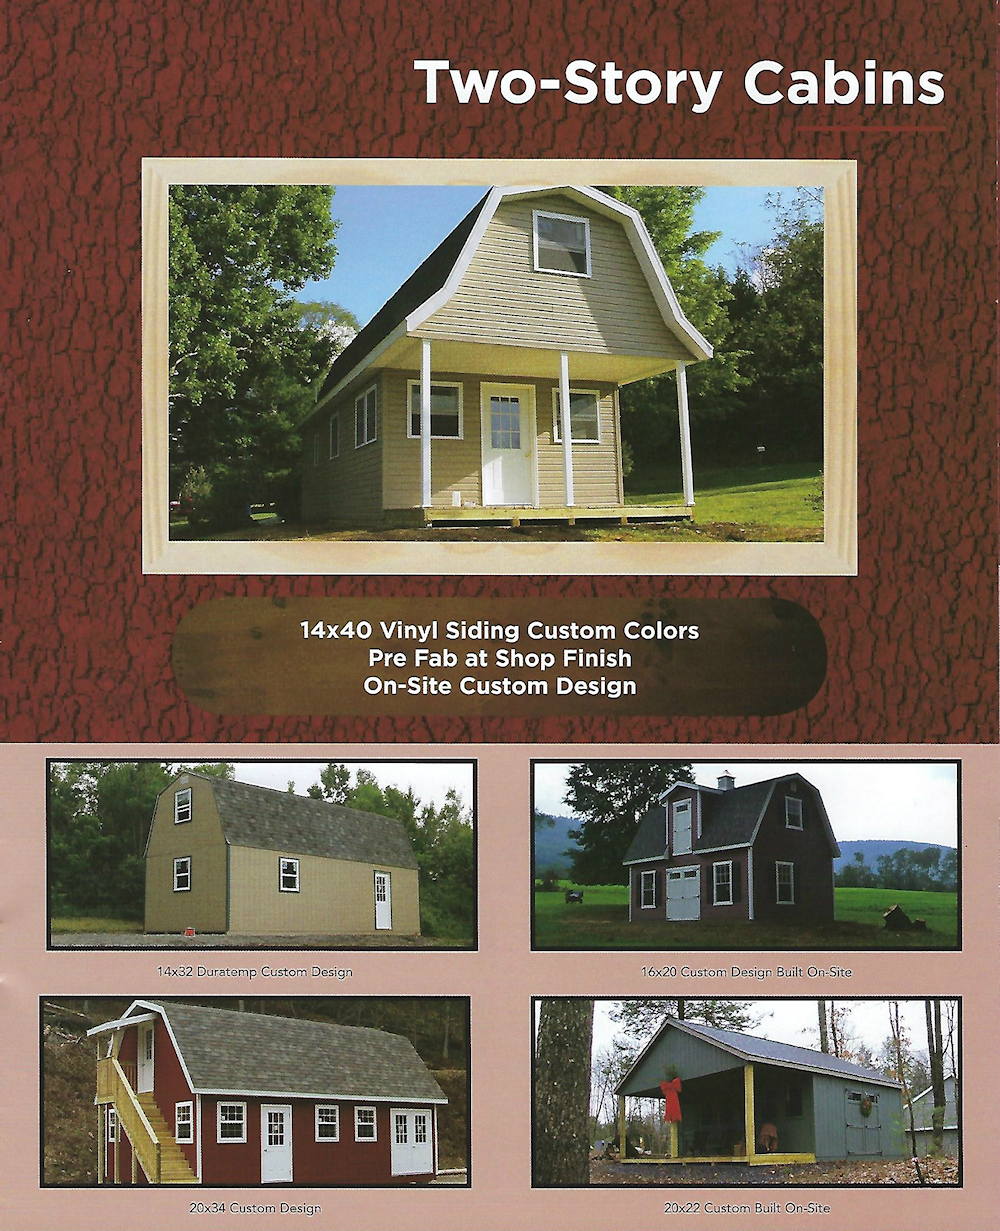 two-story cabins sm.jpg